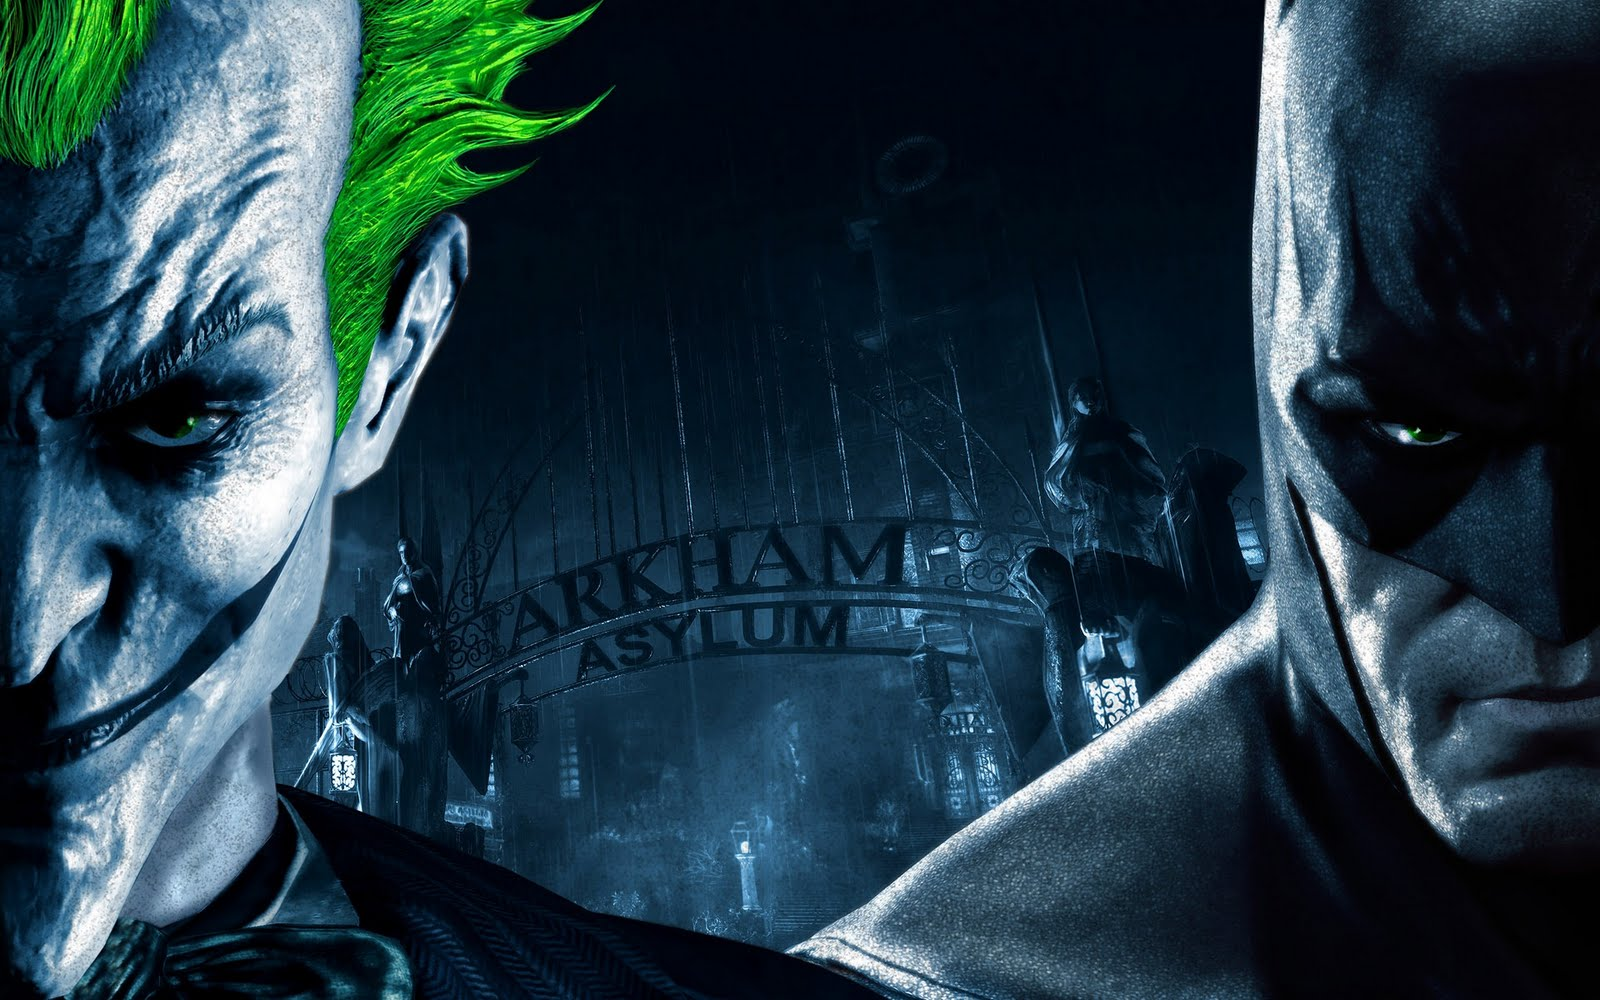 http://2.bp.blogspot.com/-Oe3CFm6hvEo/TWDP5tJV8bI/AAAAAAAADNE/OCplYGv2fHw/s1600/Batman-and-Joker-wallpaper.jpg